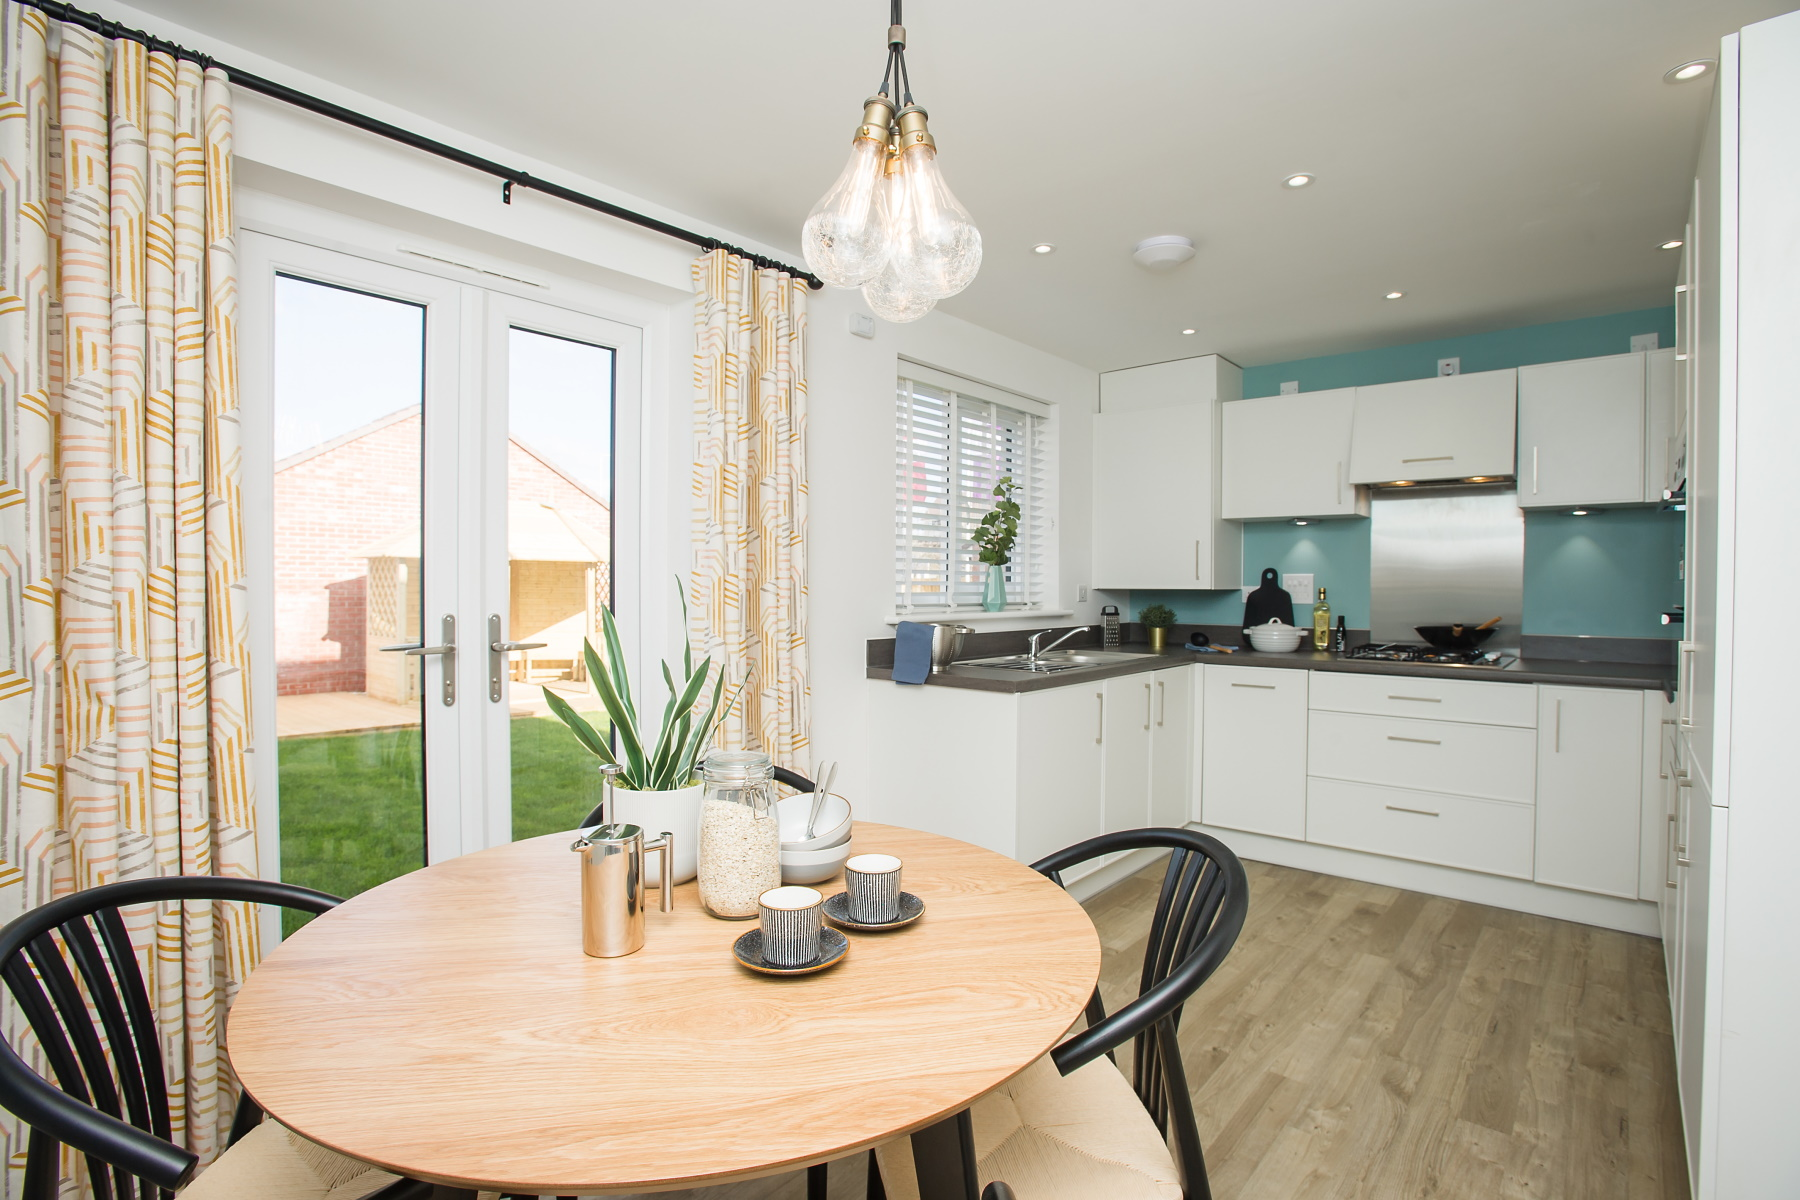 TW Exeter - Mountbatten Mews - Gosford kitchen 3